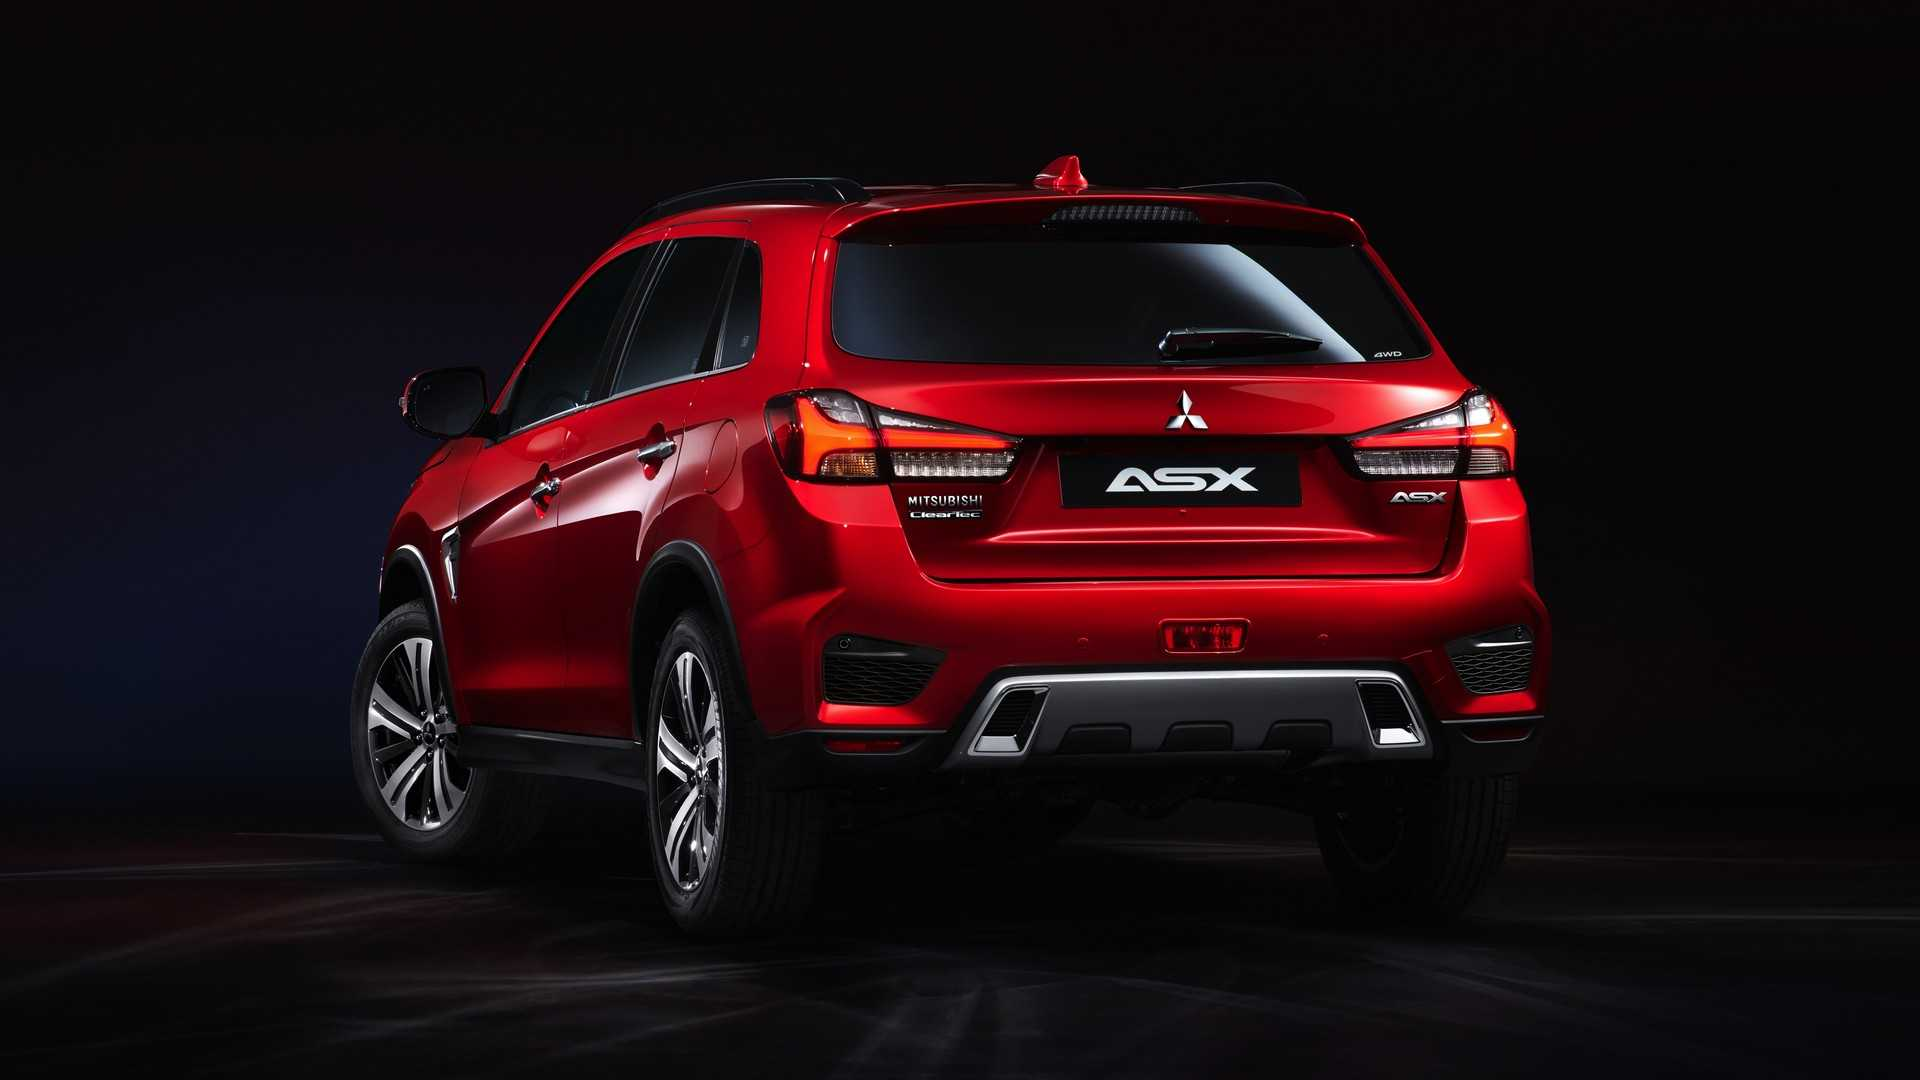 54 All New 2019 Mitsubishi Asx Ratings